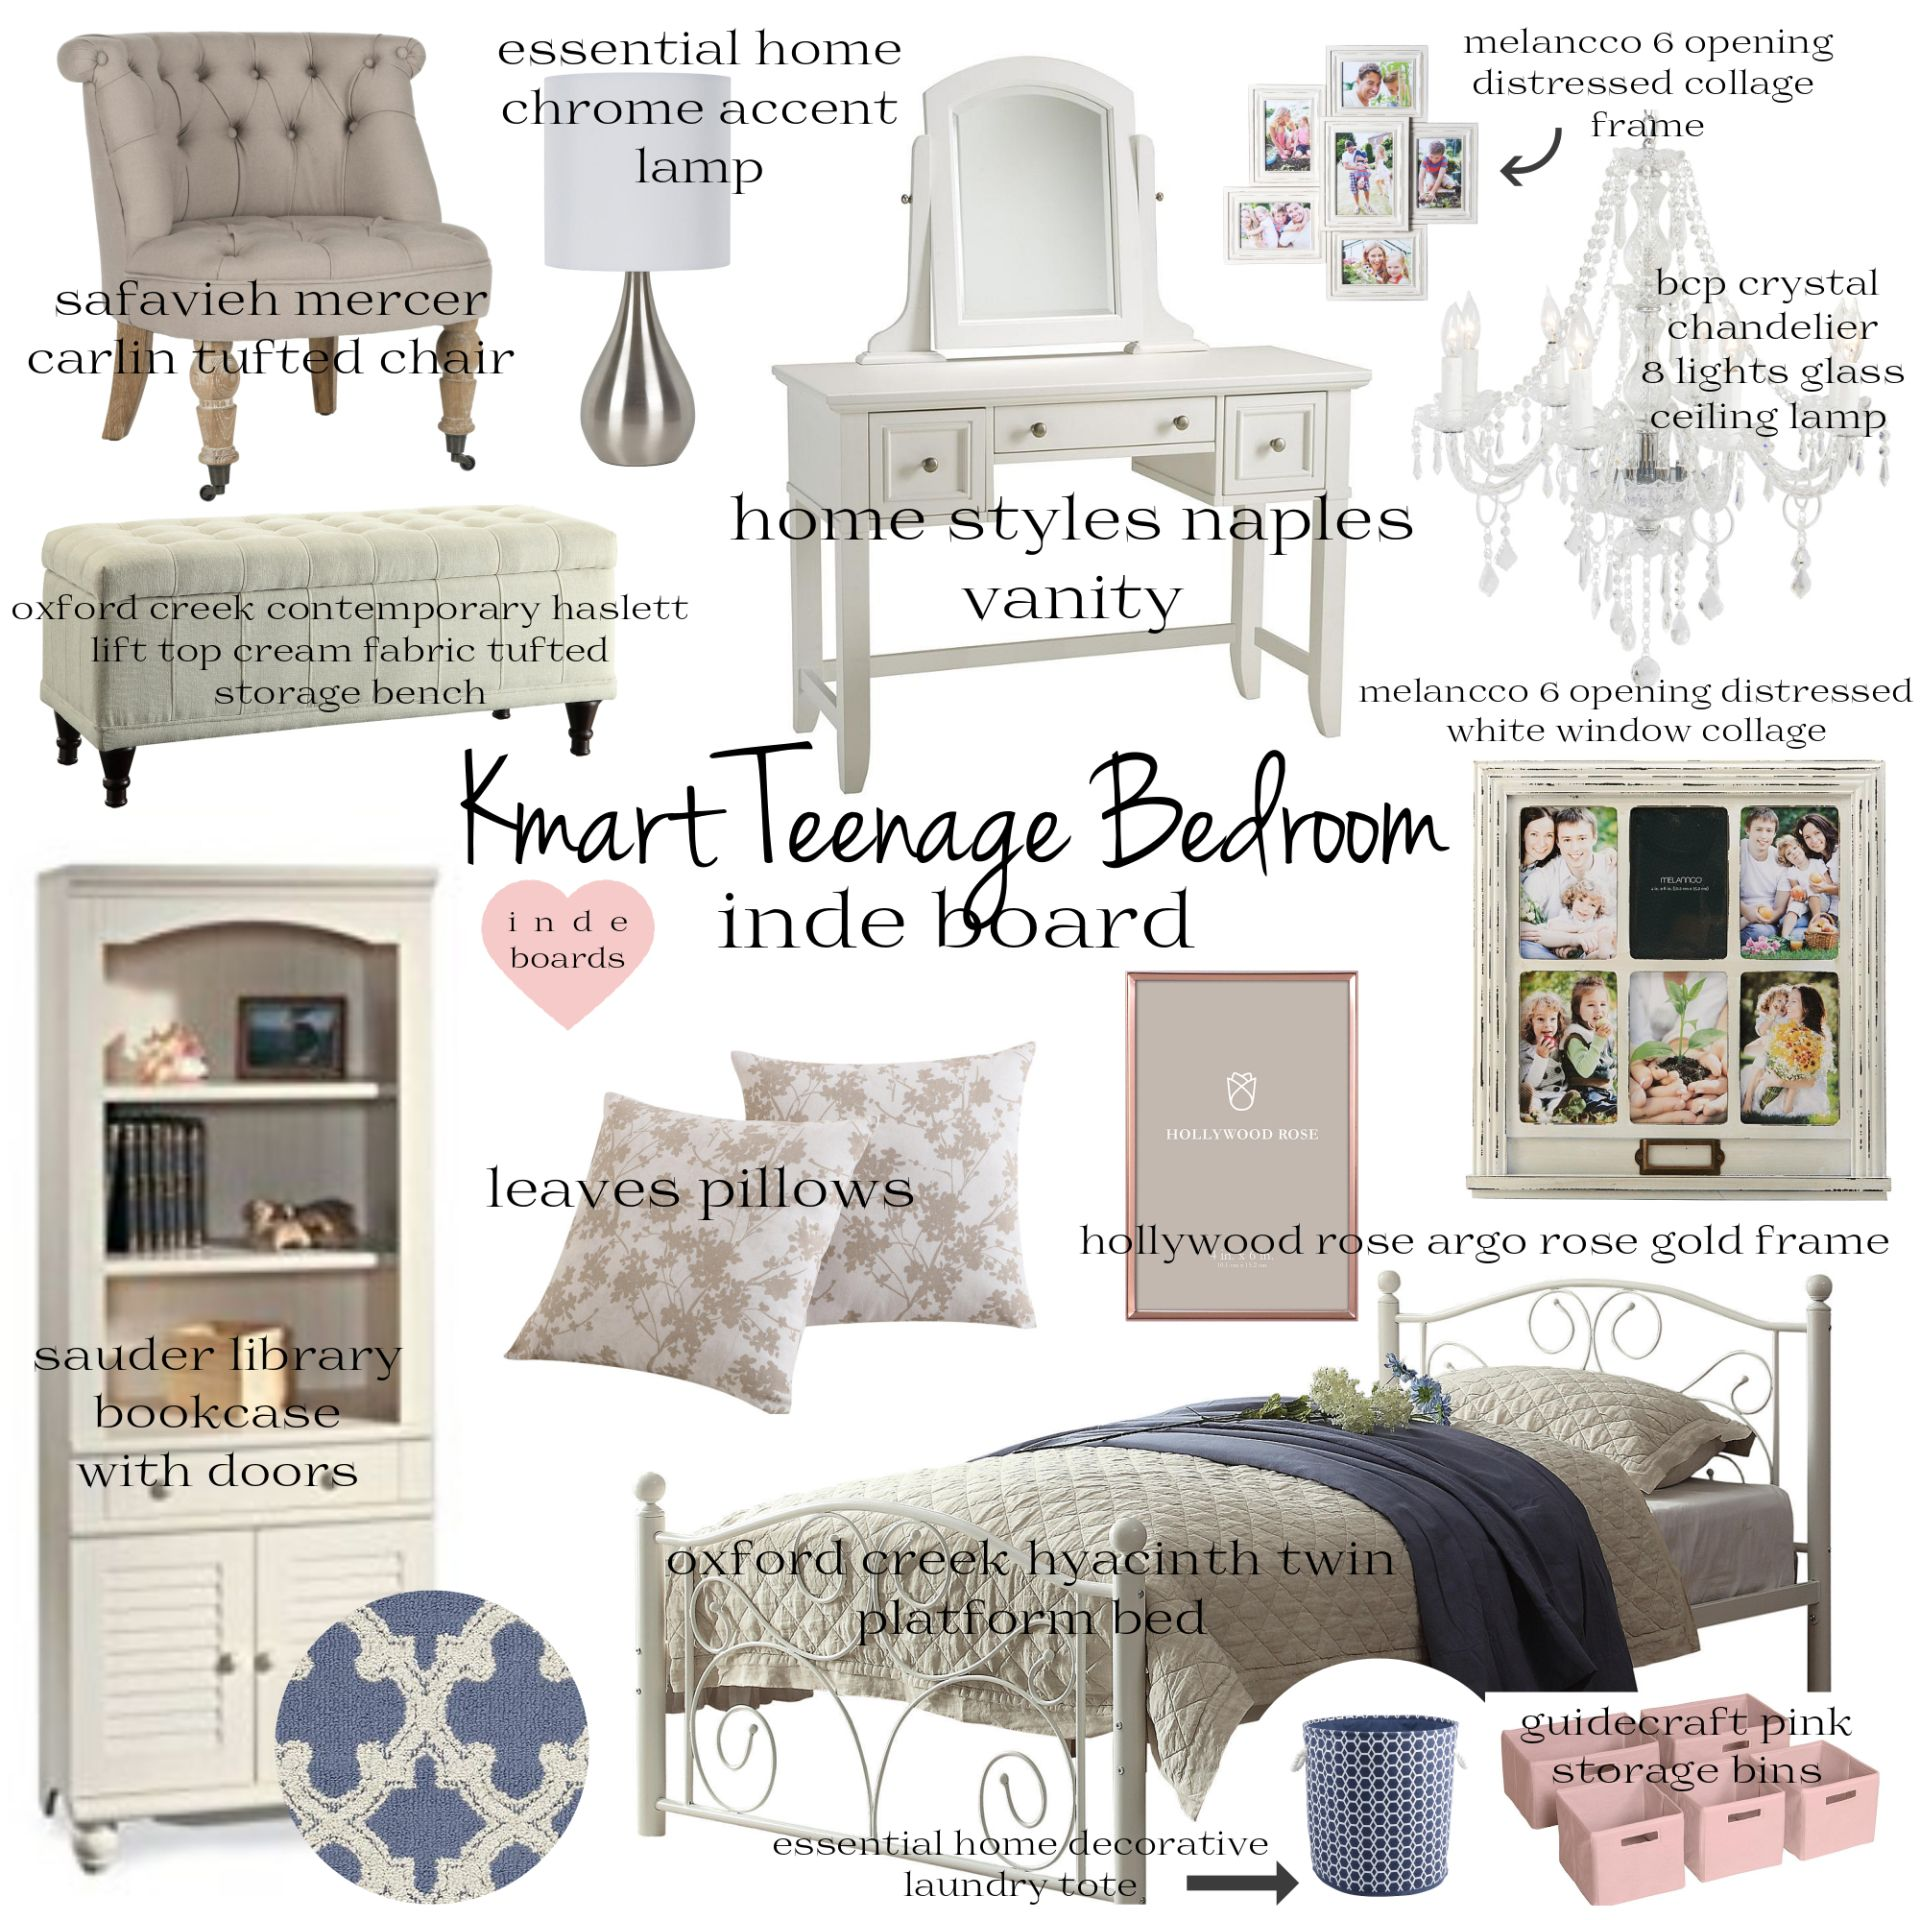 Bed Risers Kmart Australia Inde Board Kmart Teenage Bedroom Mood Board Bedrooms Teenage